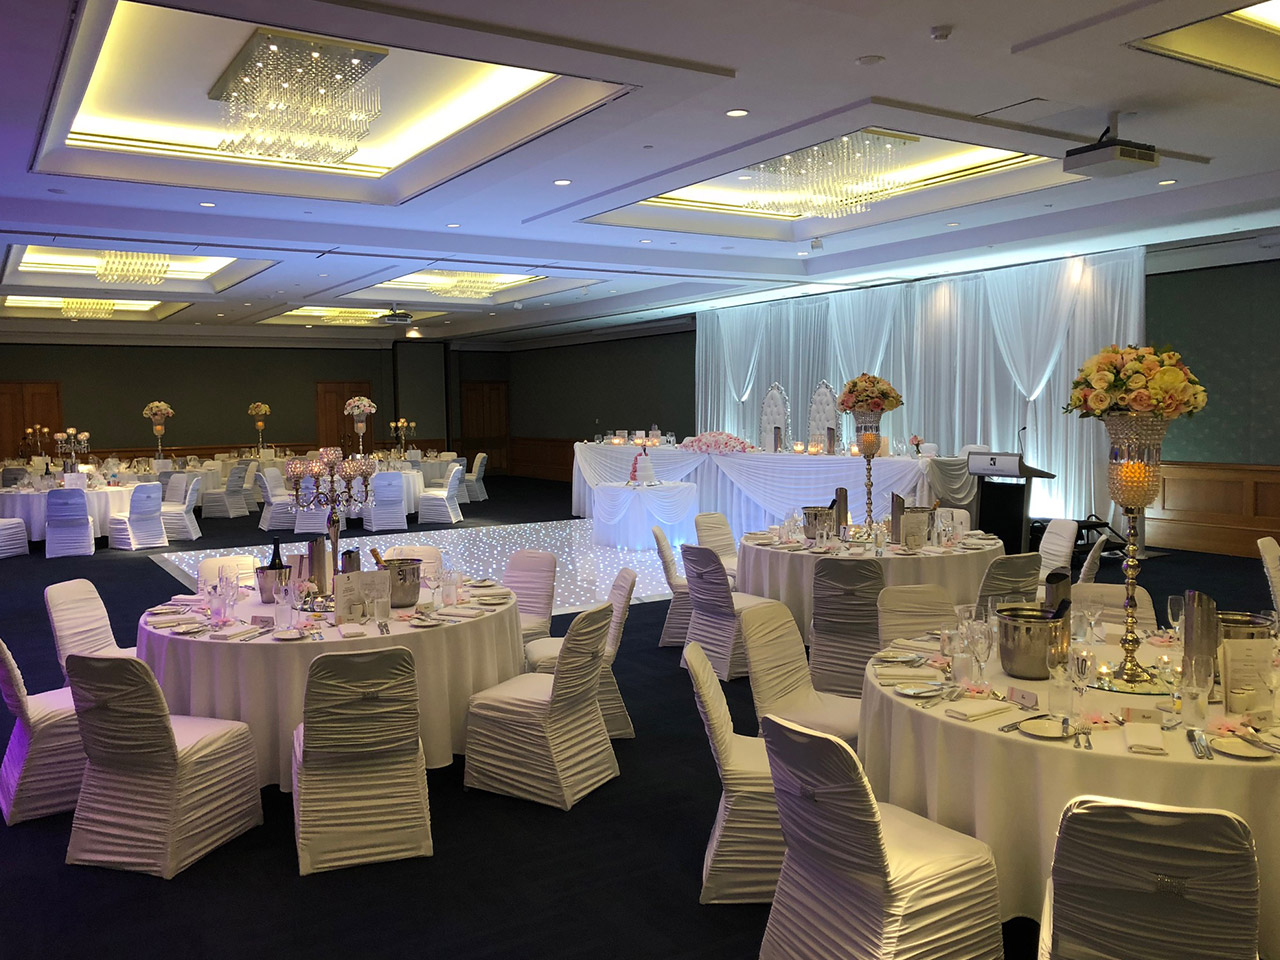 Chairs And Tables In Banquet Style, Stage Floor, Long Presidential Table And Back Drap Inside The Function Room